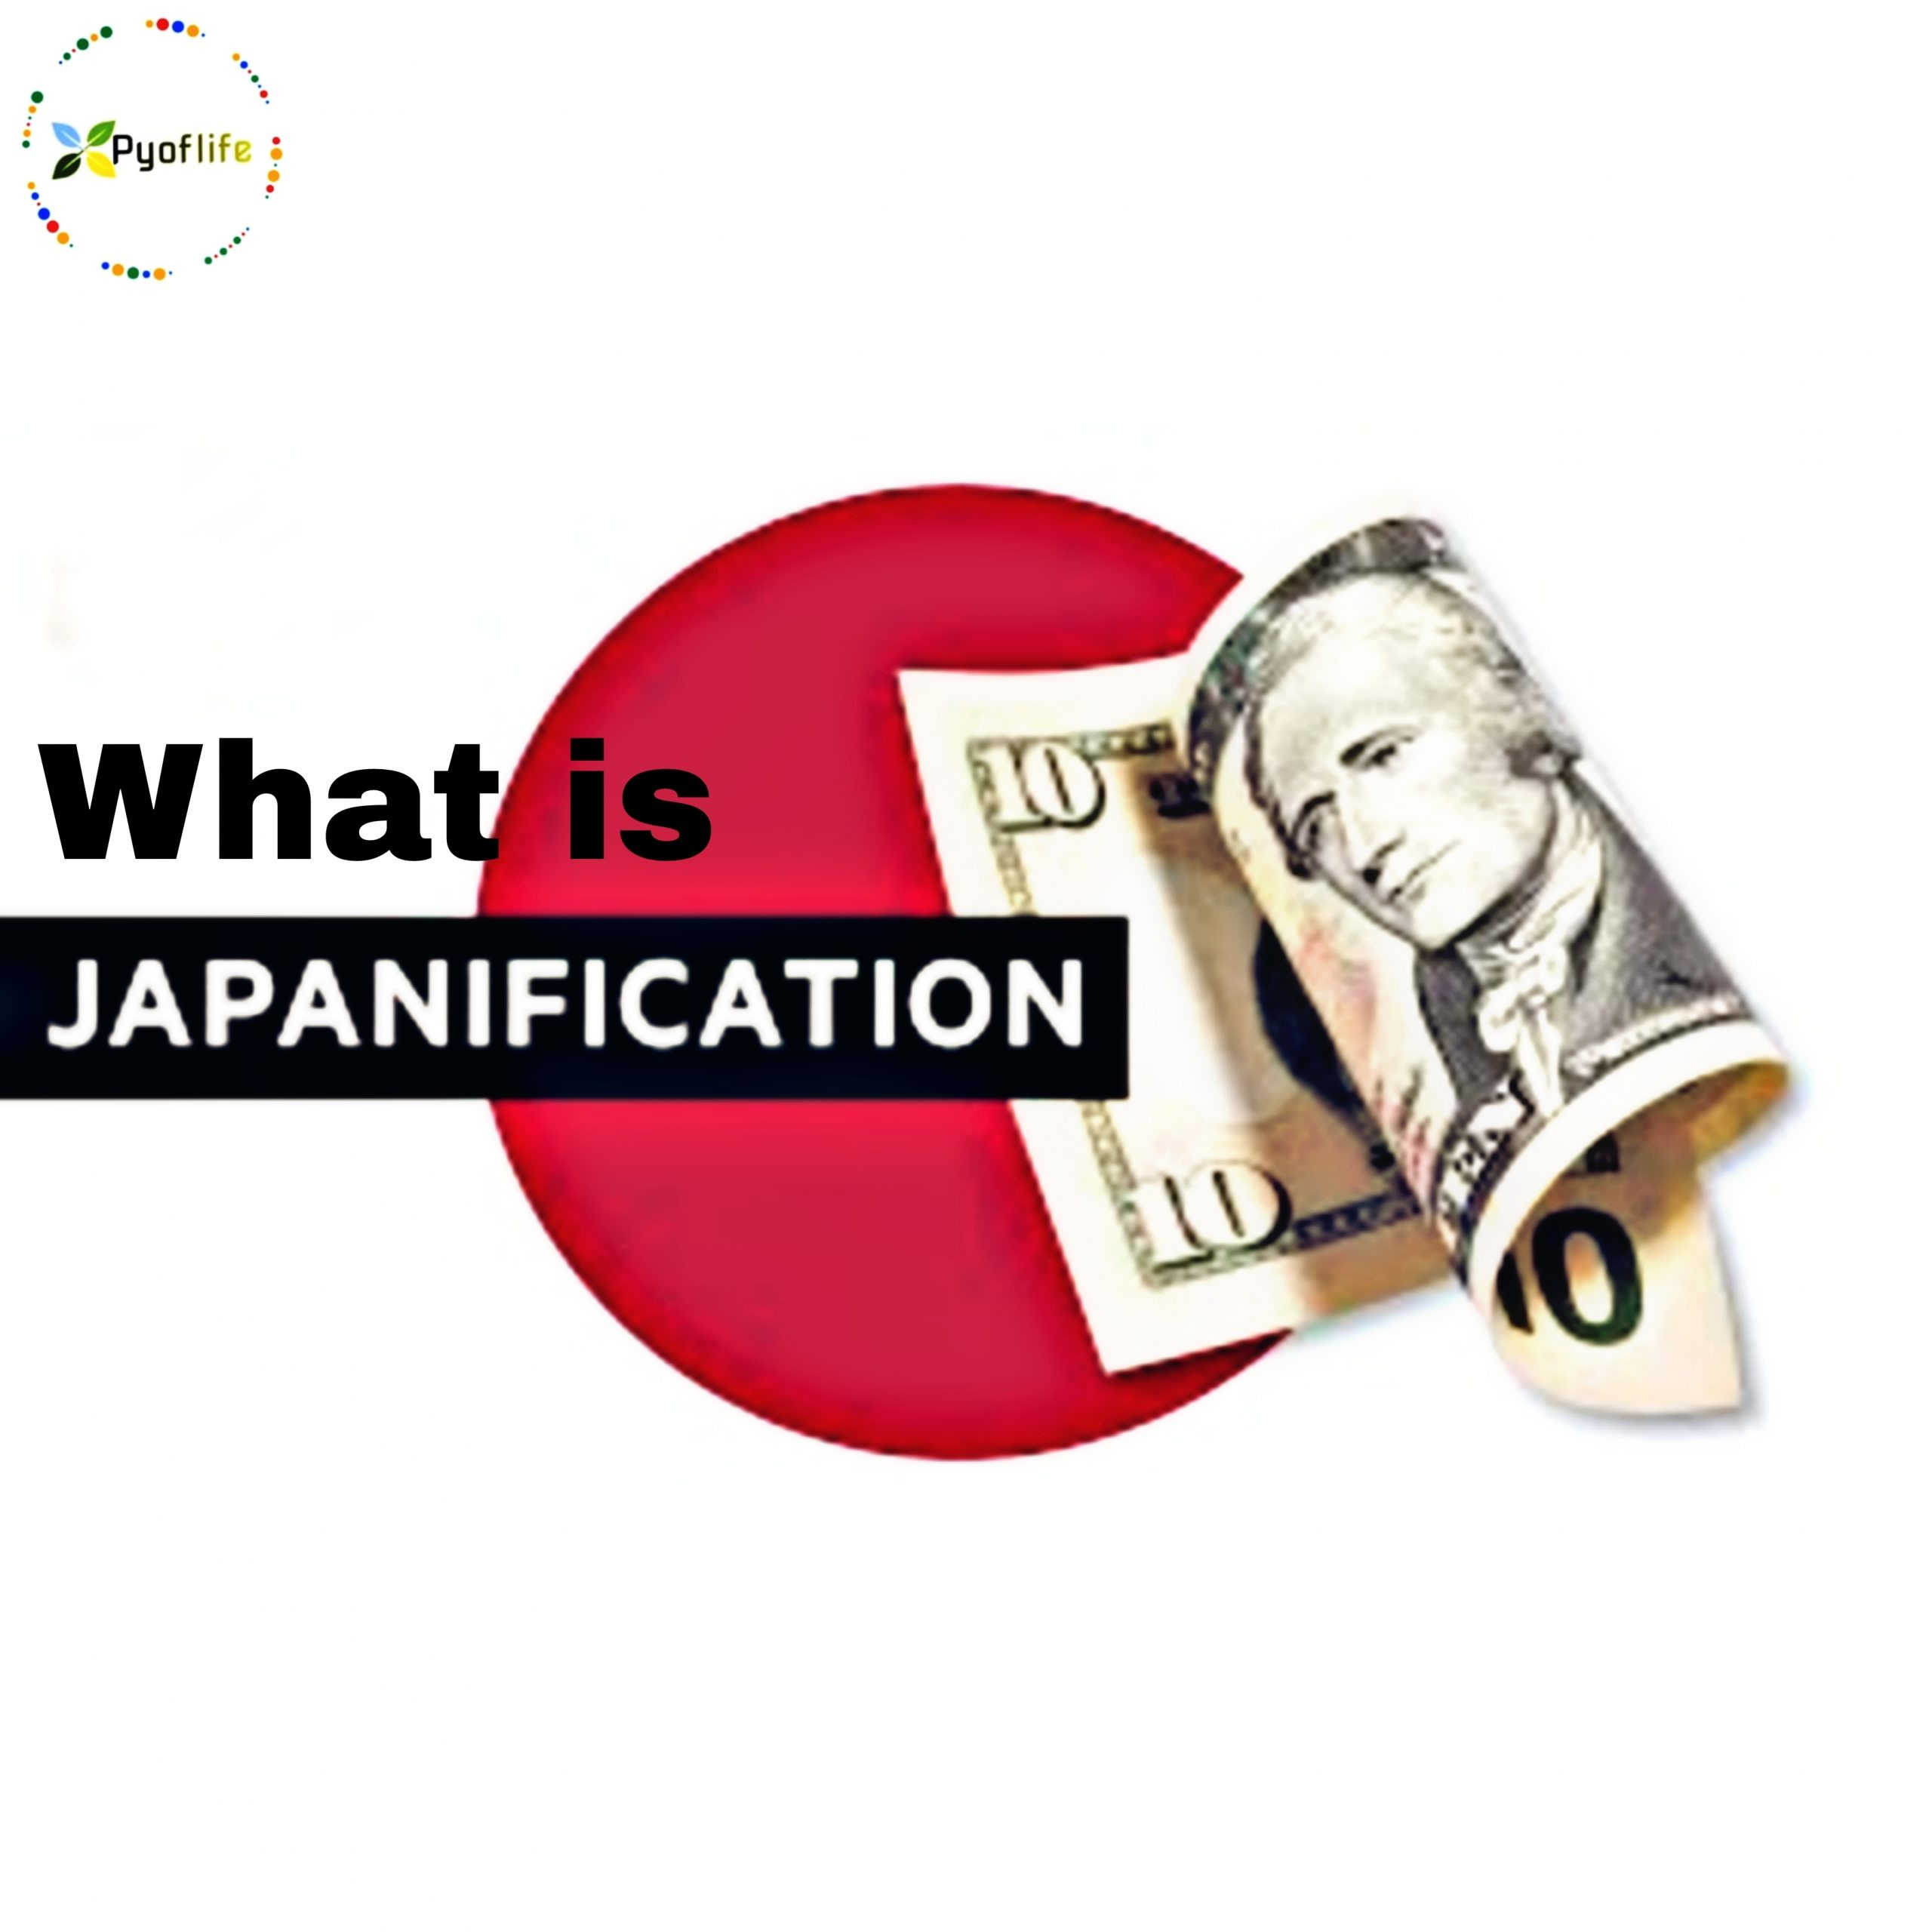 What is Japanification?